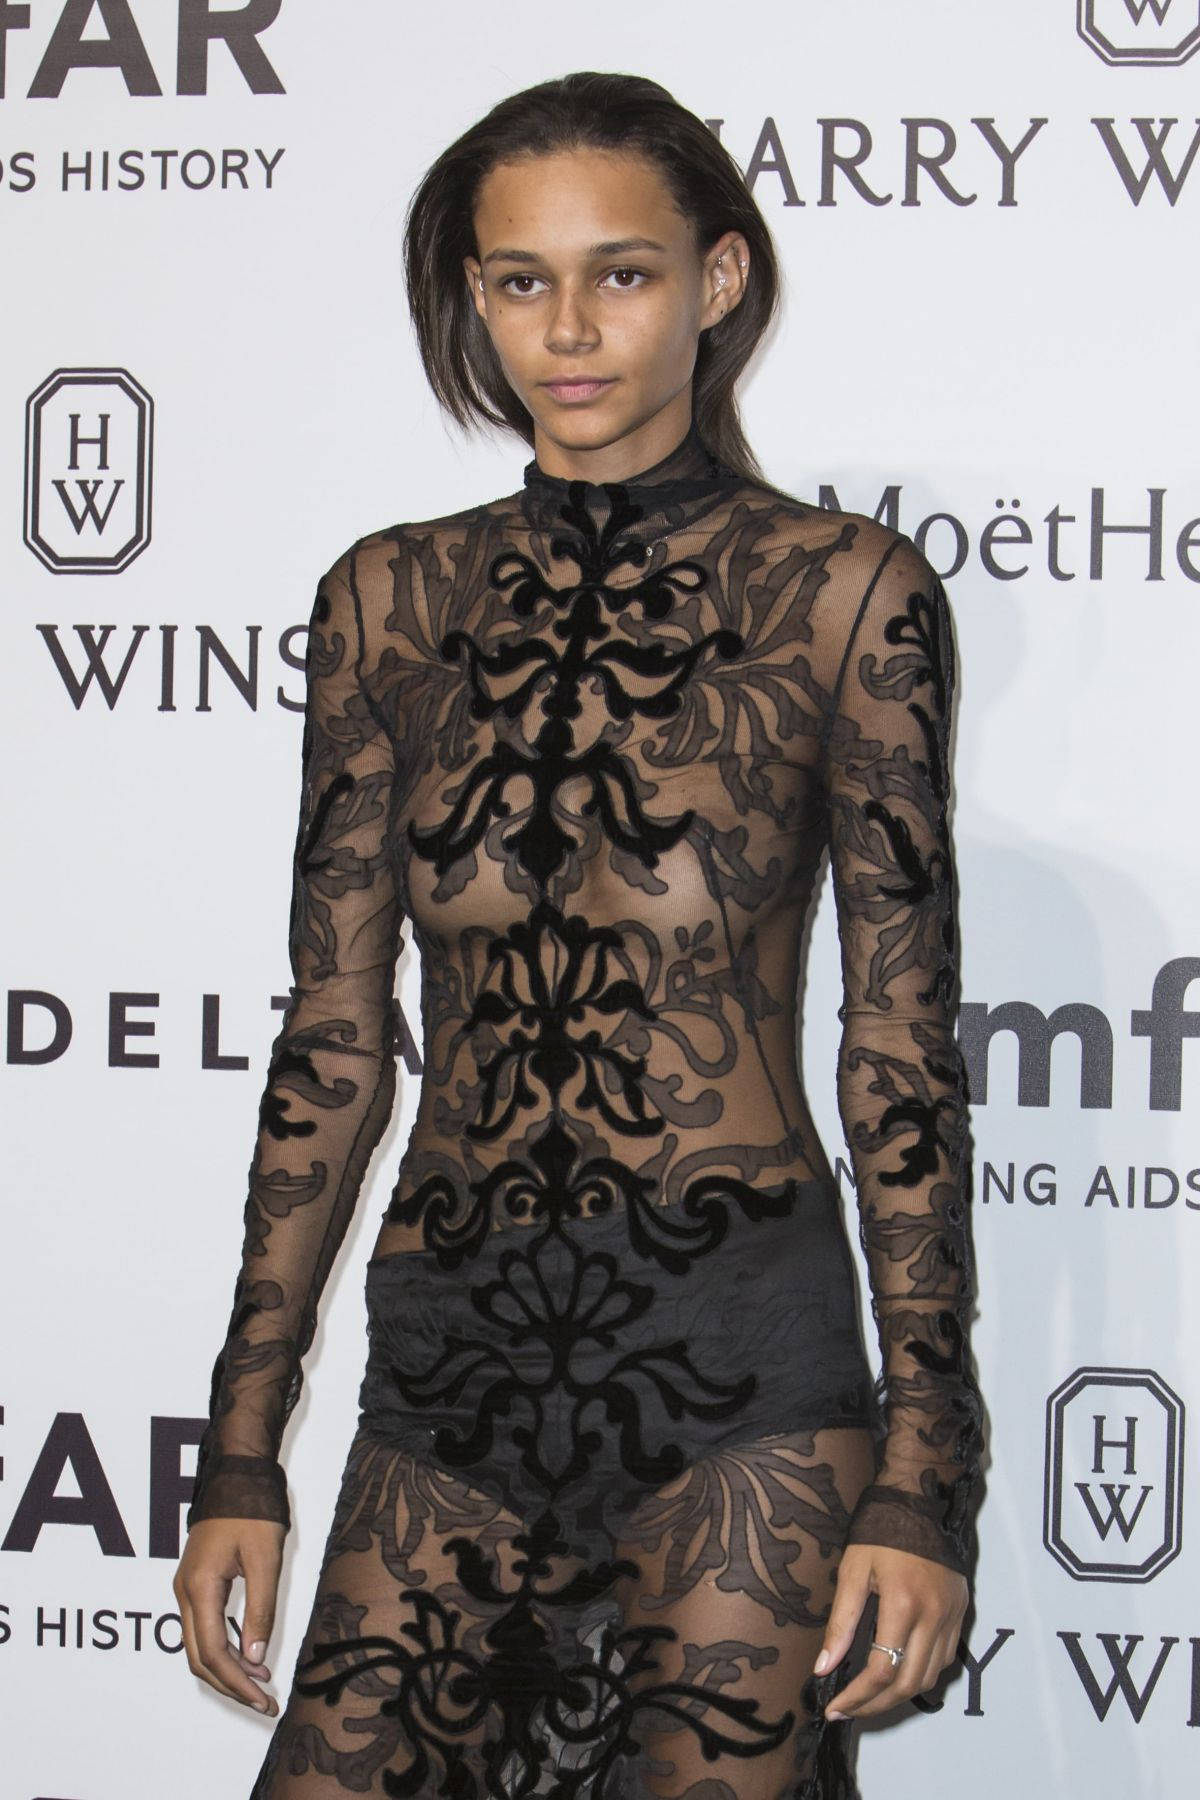 BINX WALTON at amfAR Gala in Milan 09/26/2015